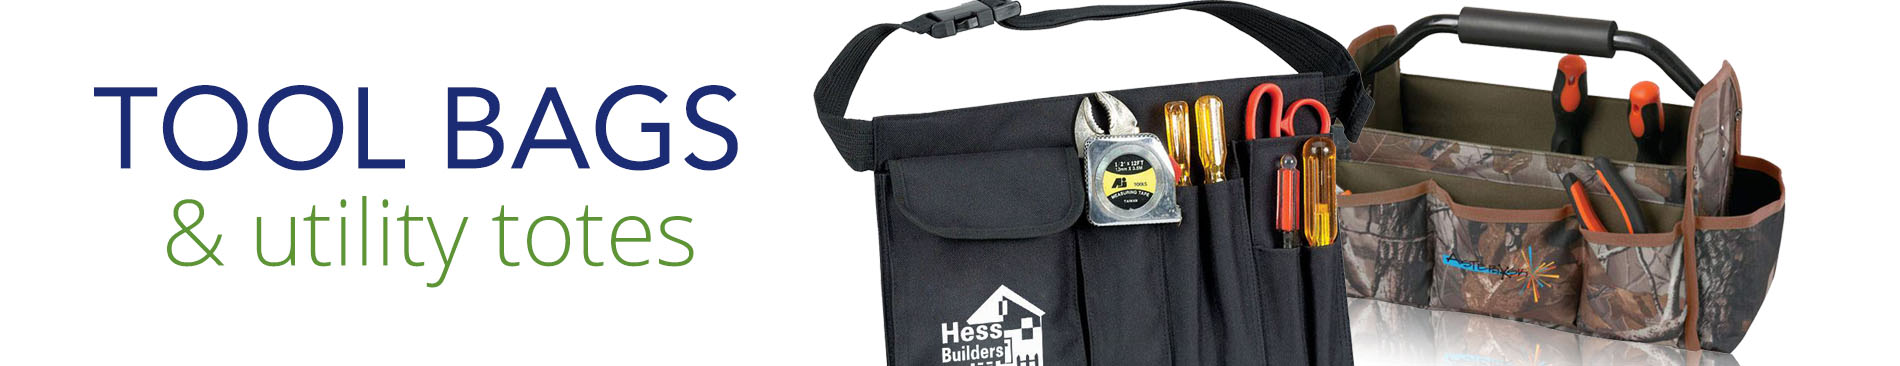 Tool Bags & Utility Totes